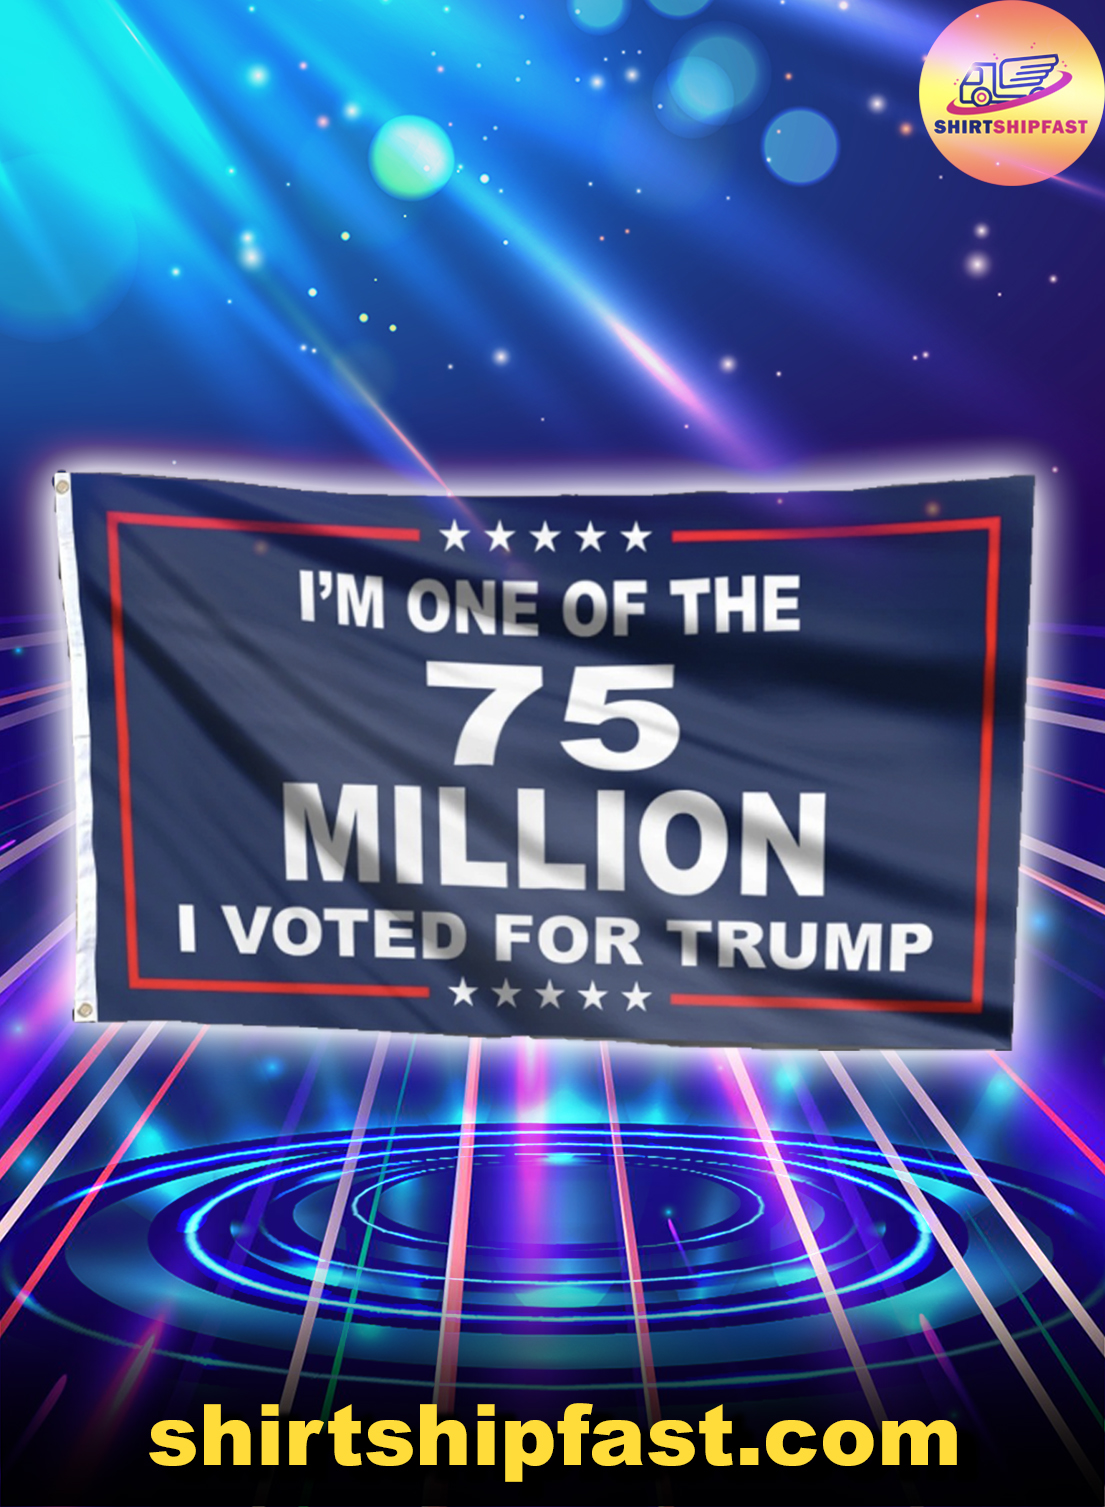 I'm one of the 75 million I voted for Trump flag - Picture 1